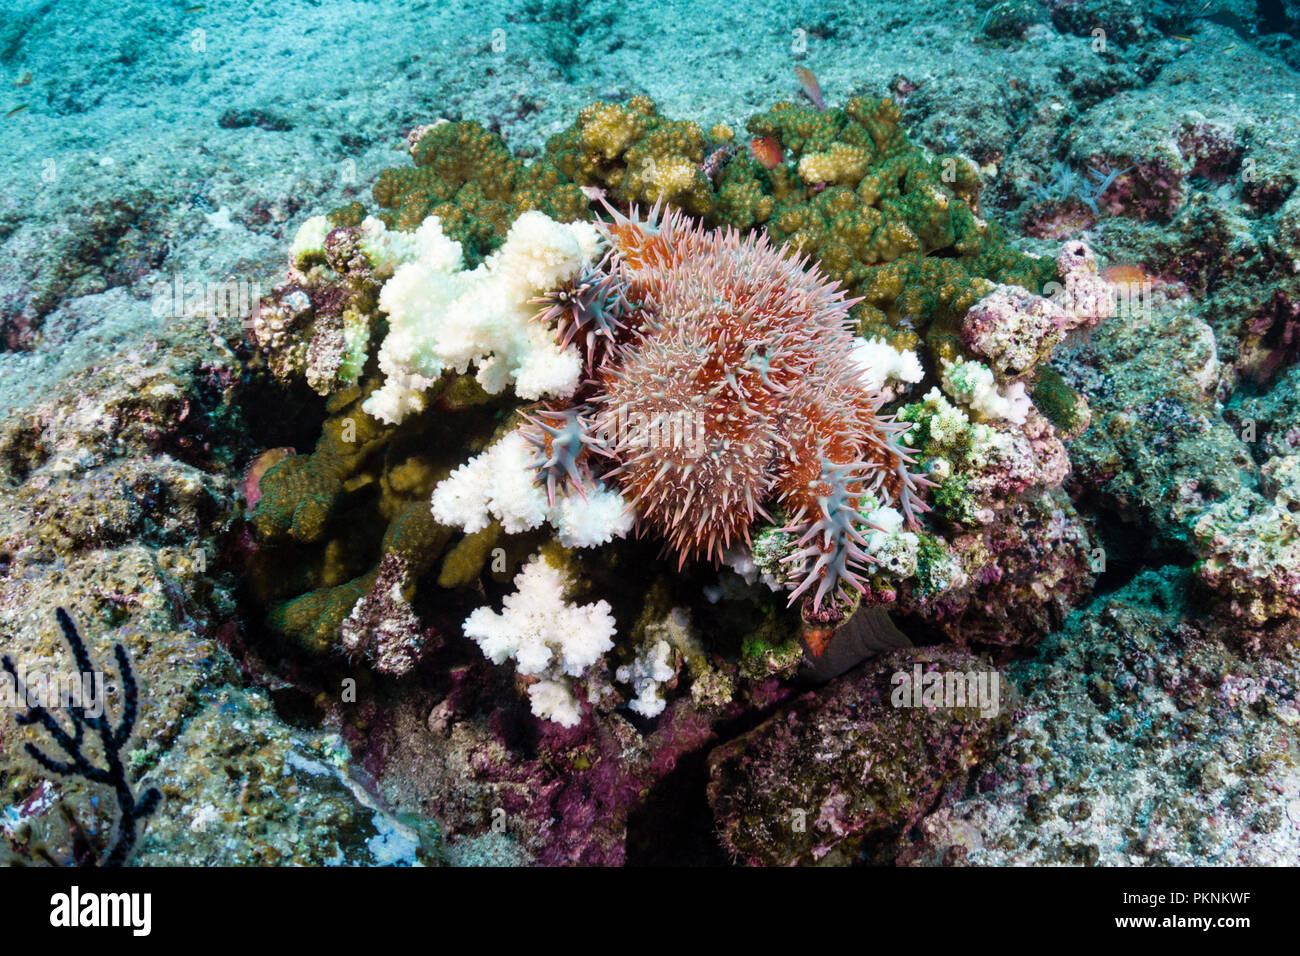 Panamic Crown of Thorns Starfish, Acanthaster ellisii, La Paz, Baja California Sur, Mexico - Stock Image